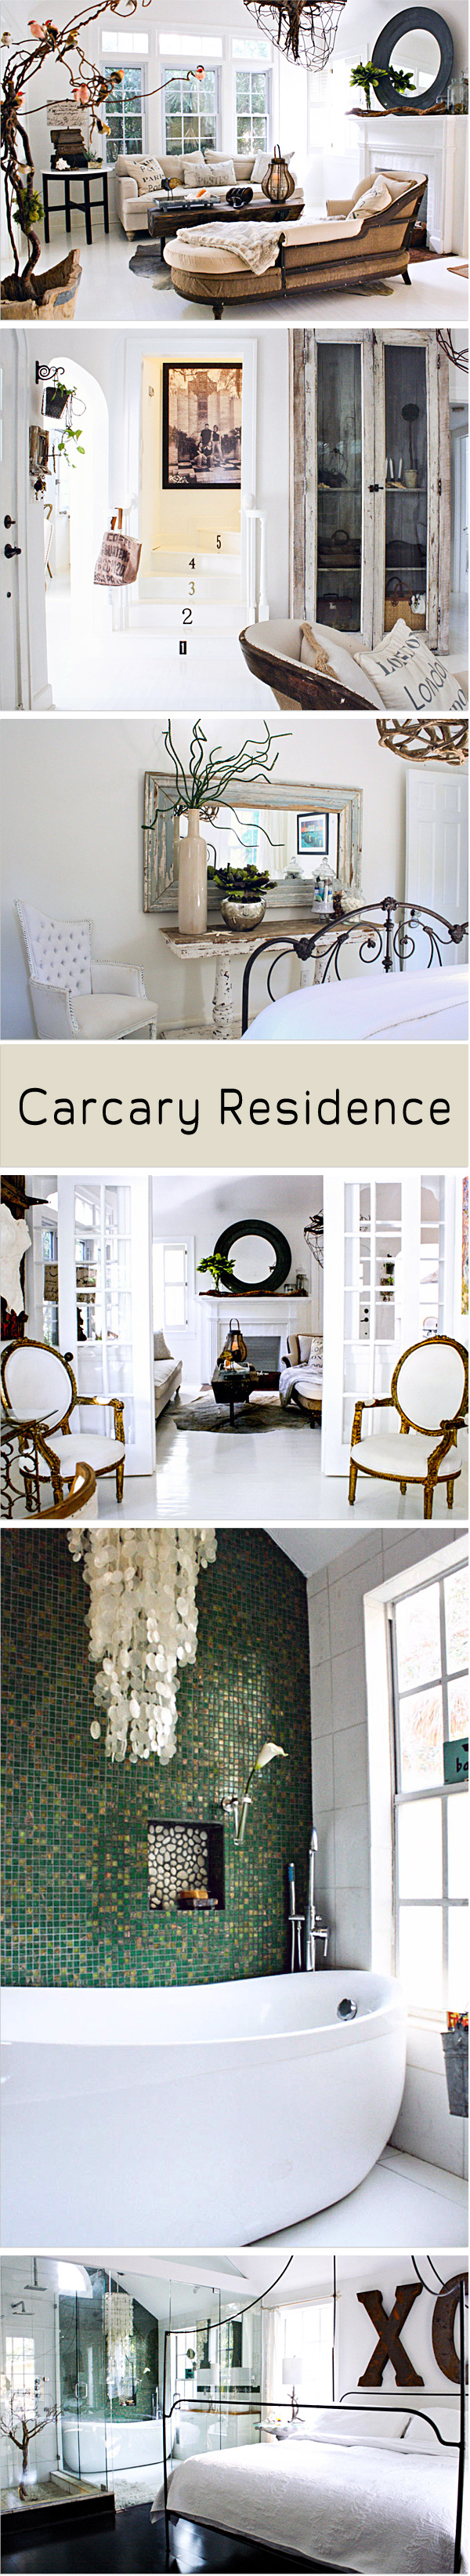 Carcary Residence in Florida